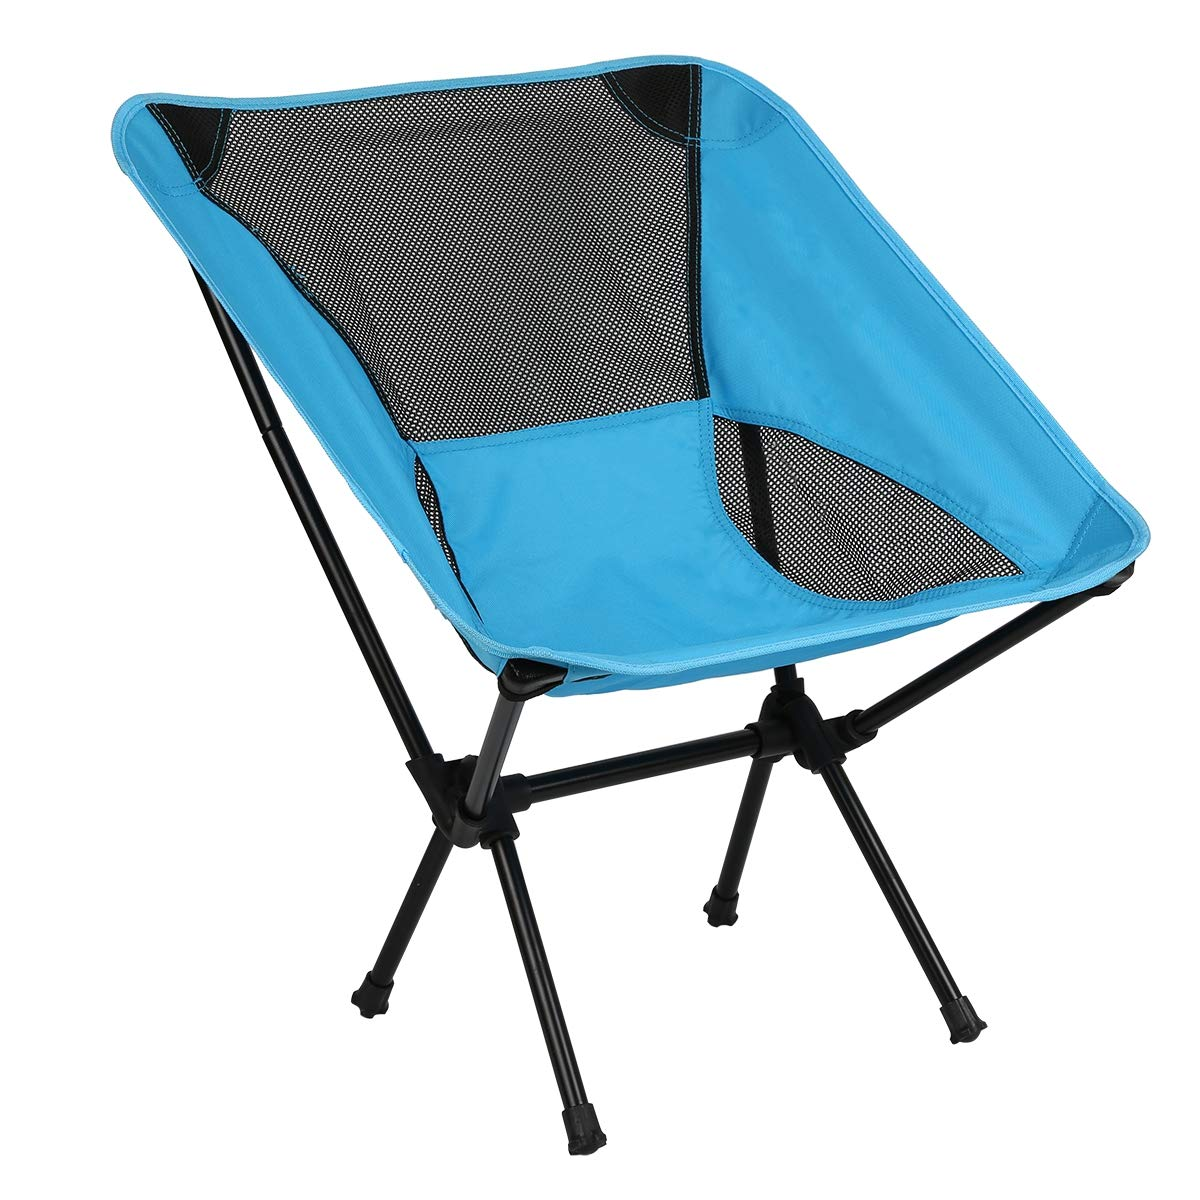 Amazon.com: Bright Starl - Silla plegable ultraligera para ...